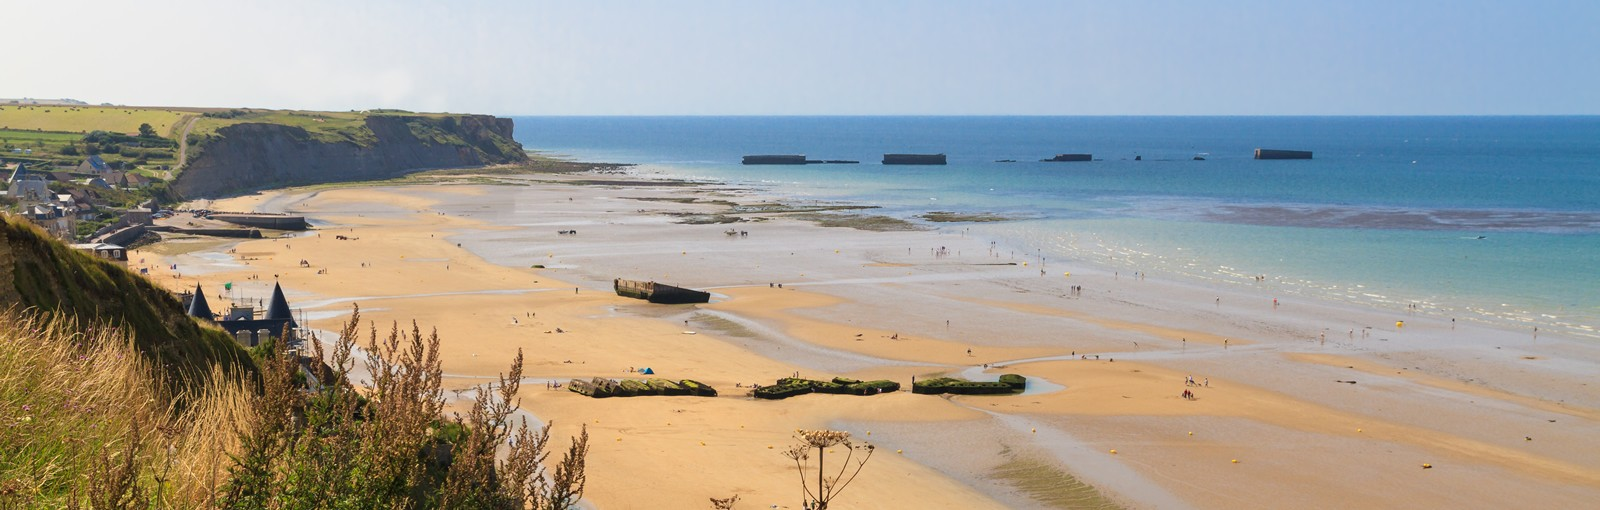 "Tours 3 days in Normandy, a thorough exploration of the ""DDay"" Landings area - Normandy - Multiday tours from Paris"